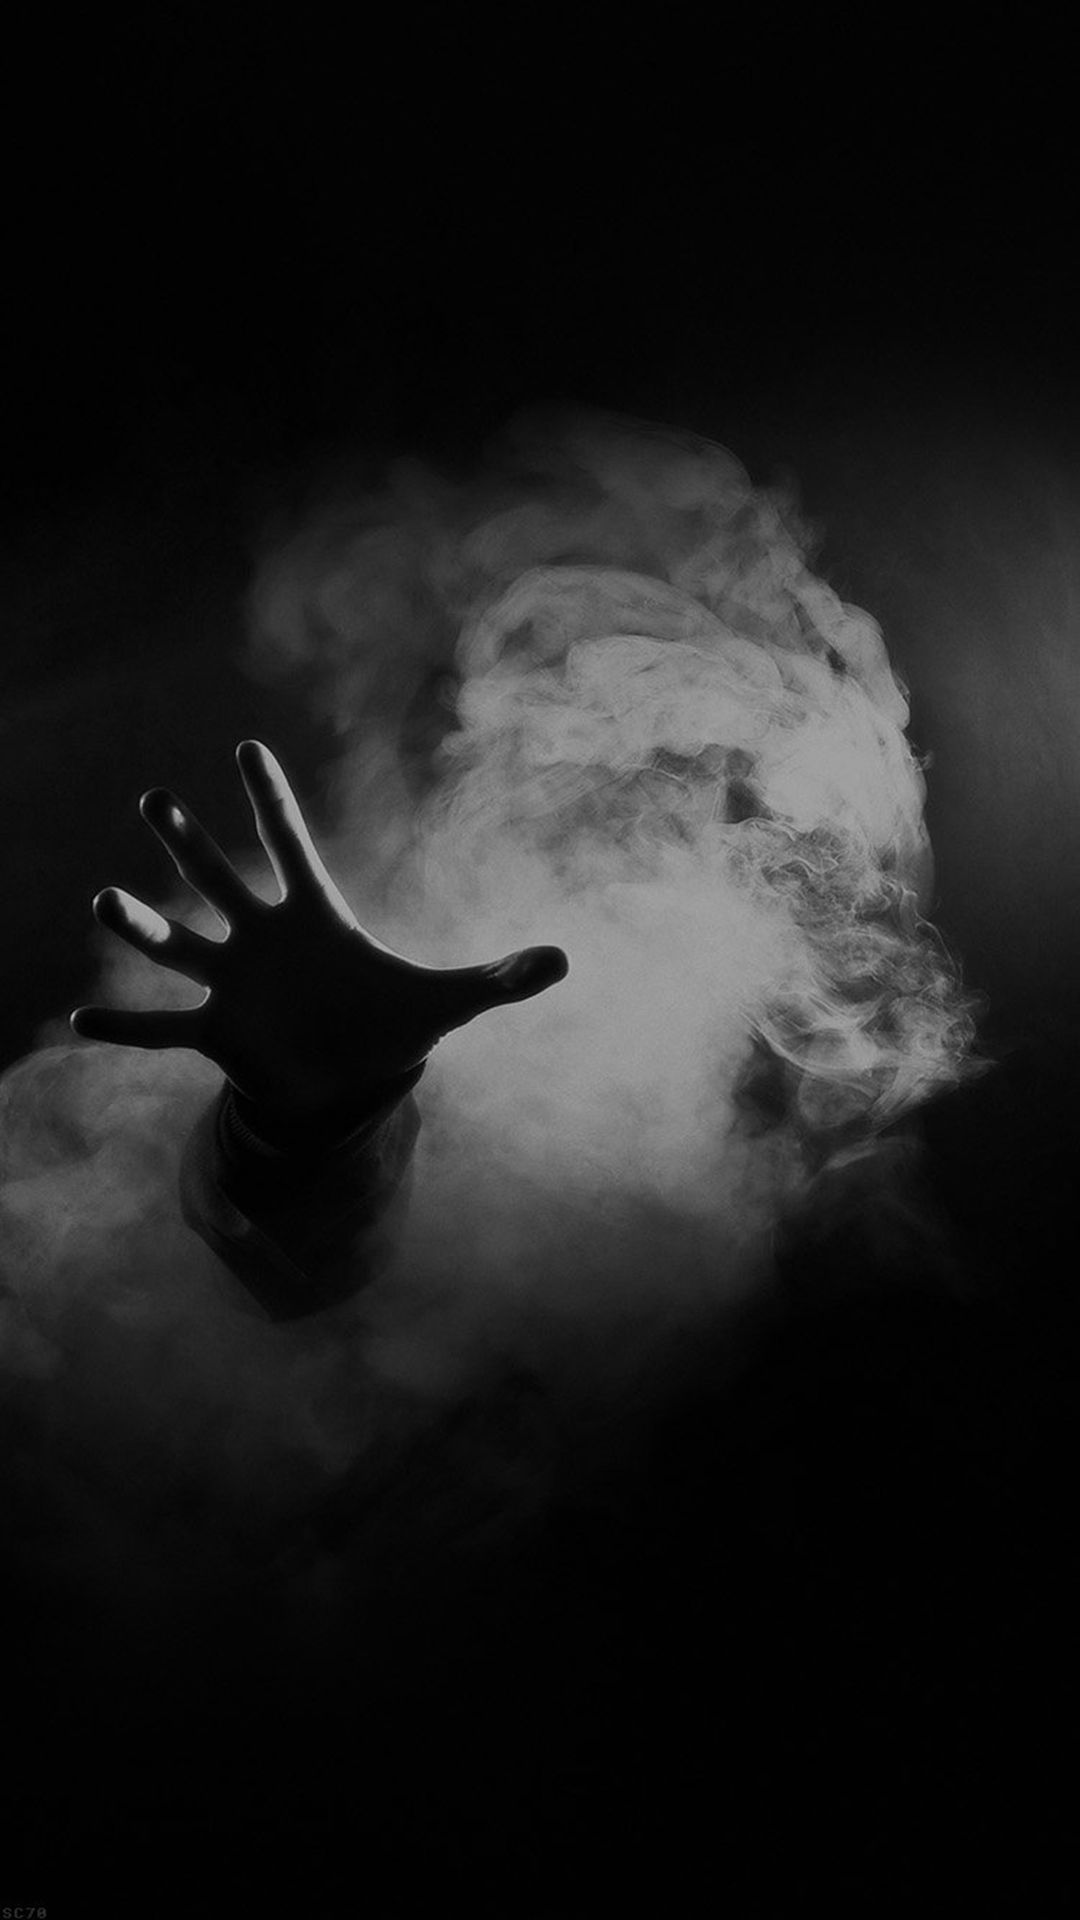 Hand From Smoke Black Iphone 6 Plus Wallpaper Smoke Wallpaper Iphone 6s Wallpaper Black Phone Wallpaper